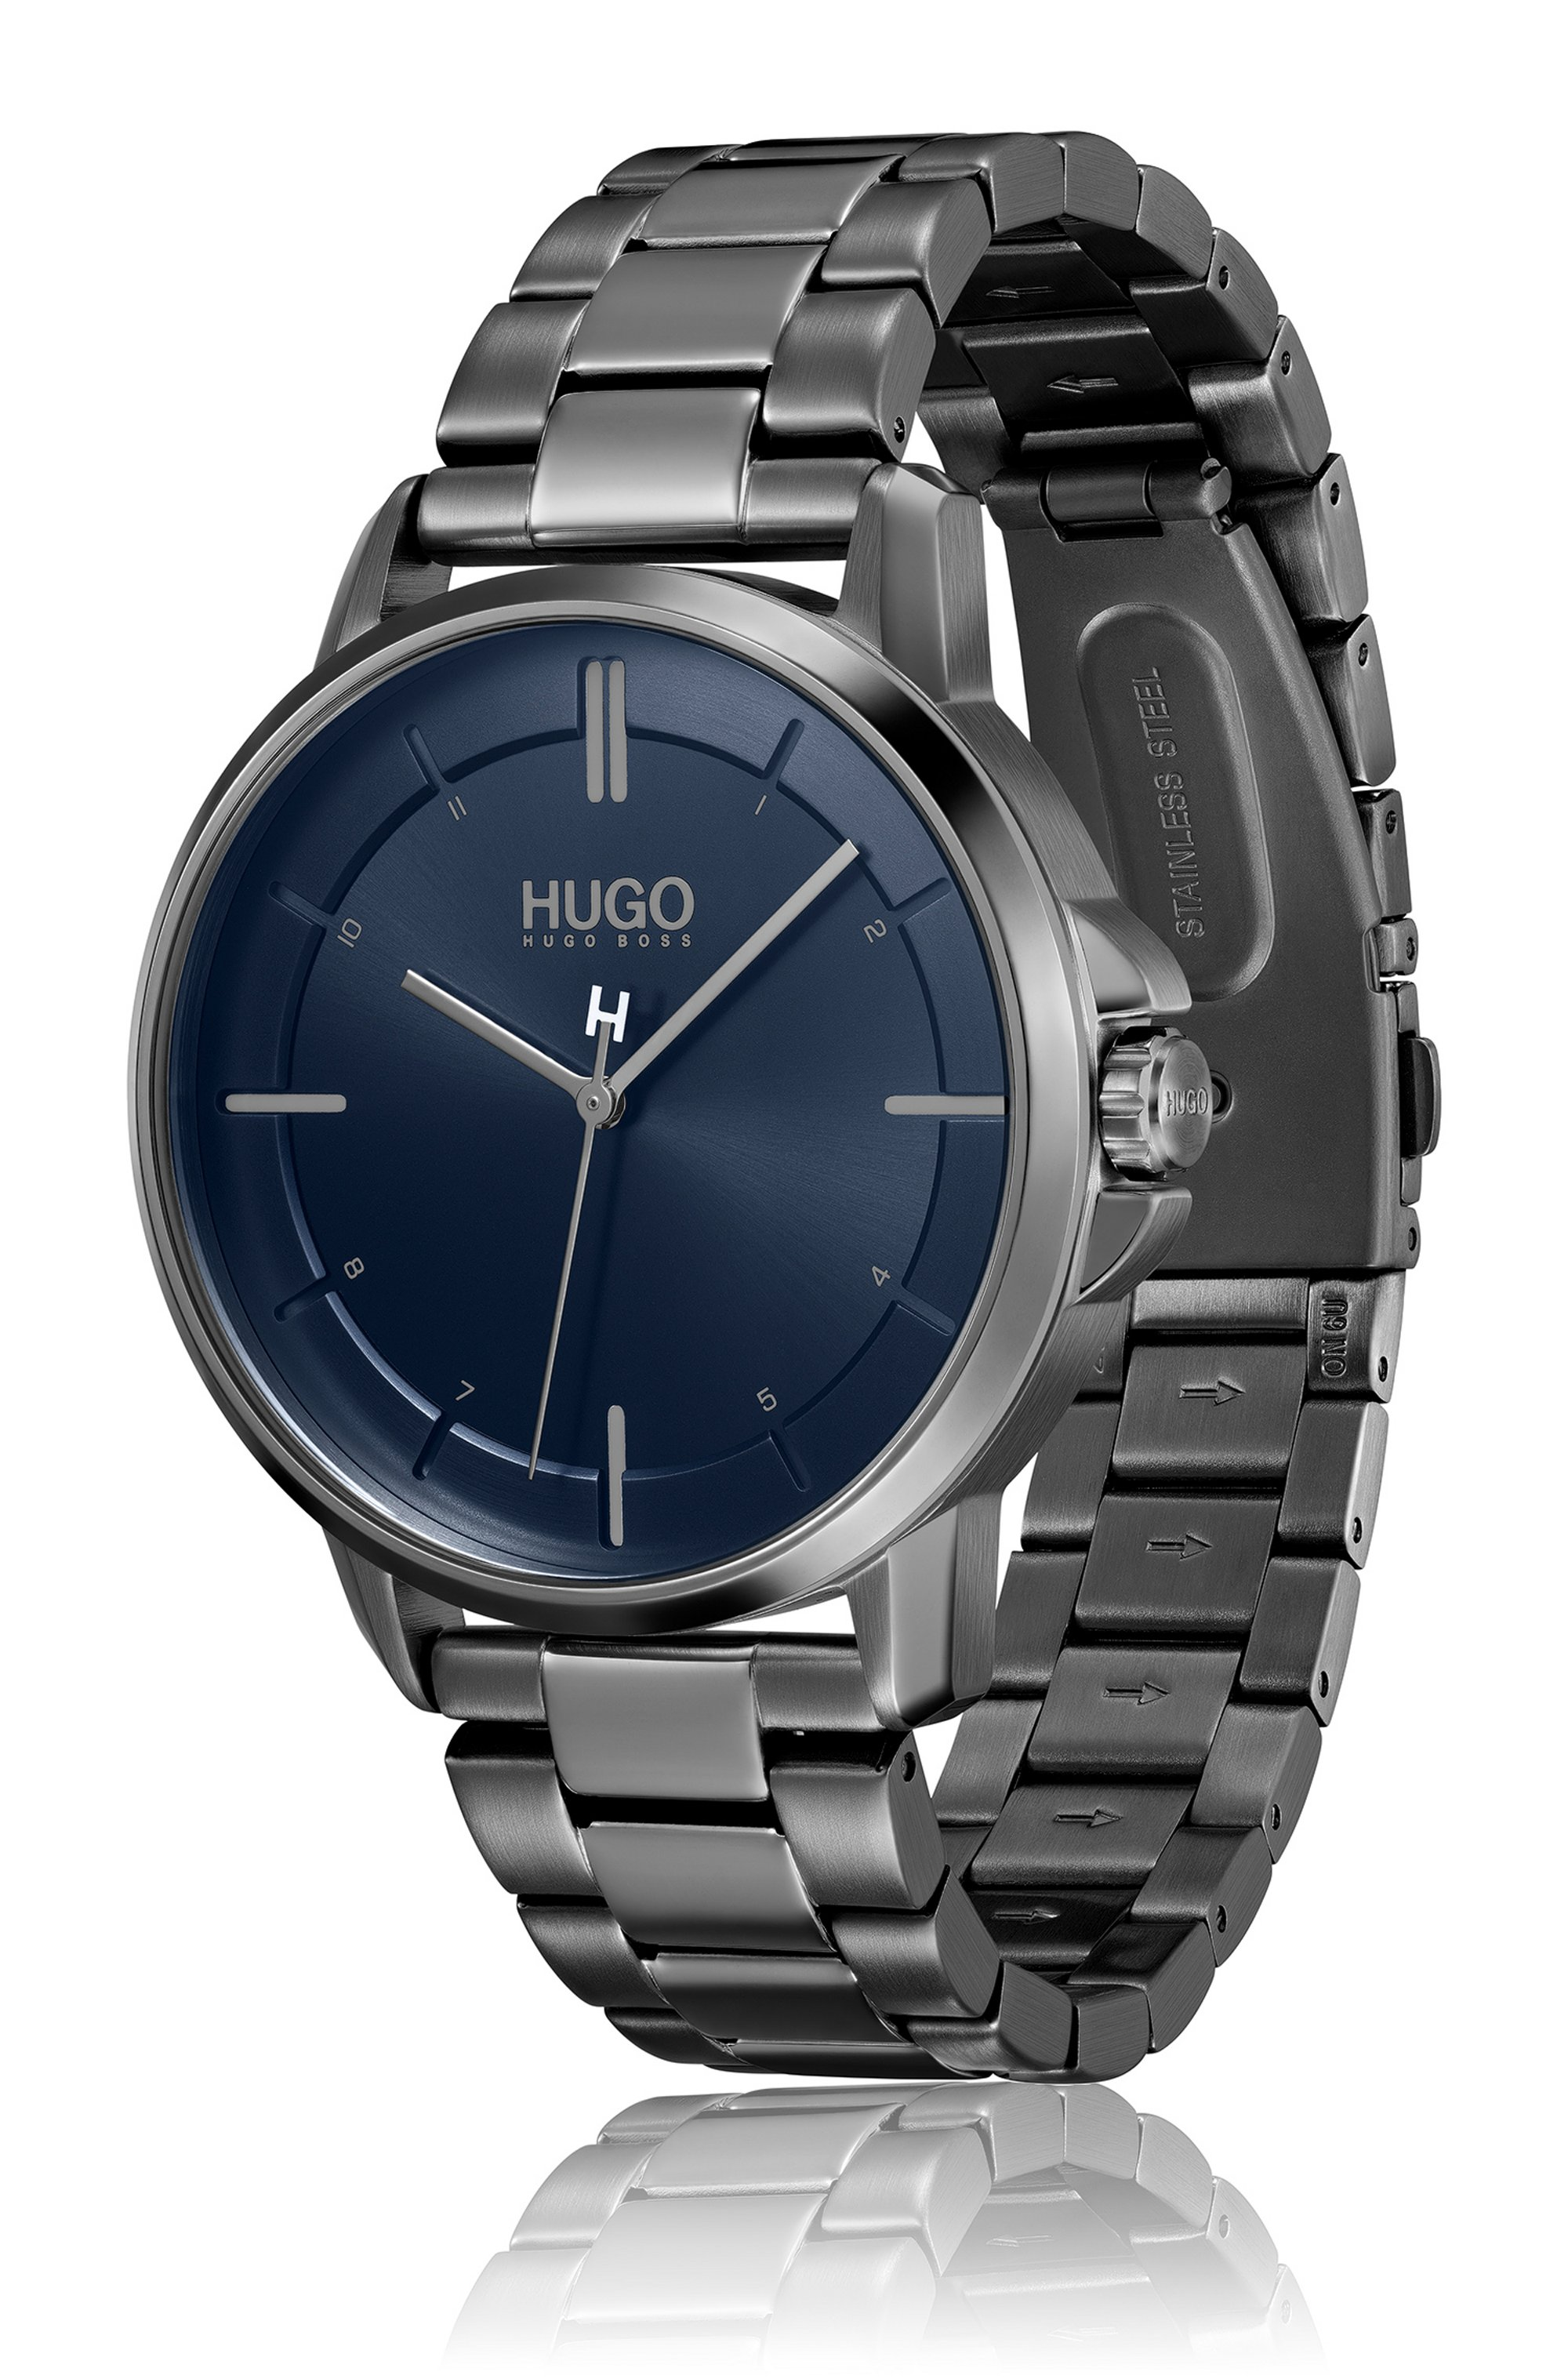 Grey-plated watch with brushed blue dial